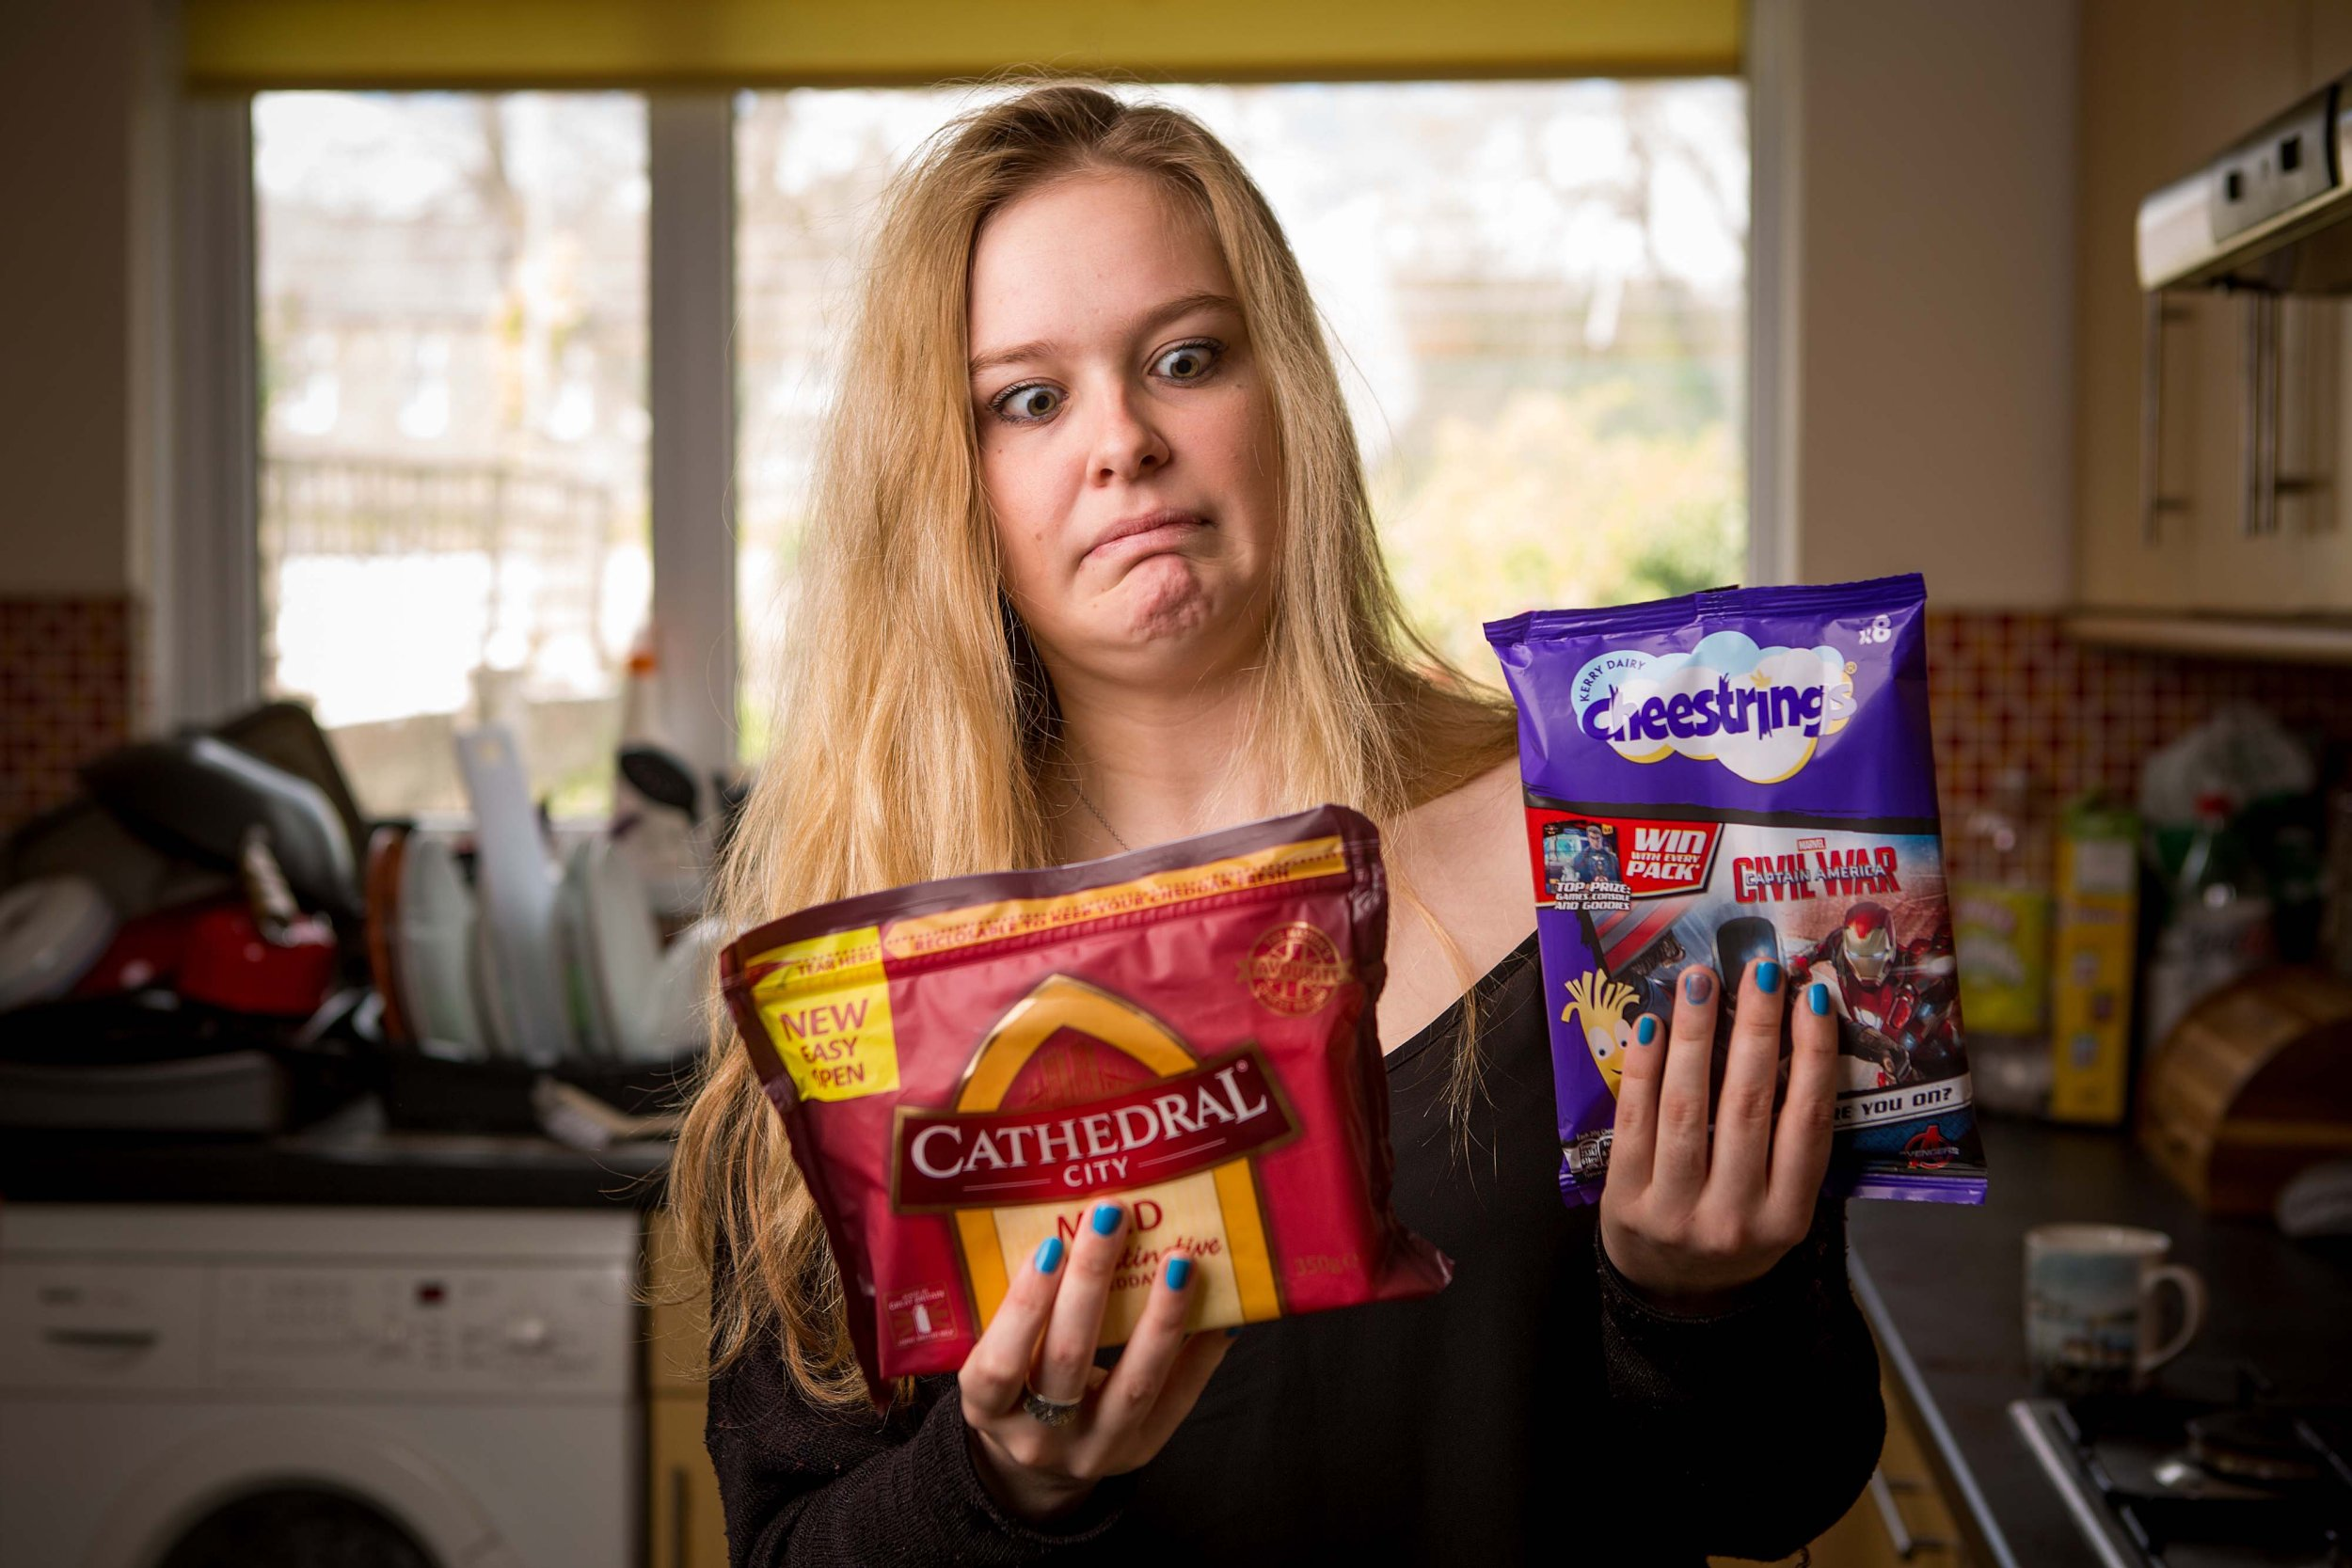 Katie Weston from Cardiff - who is scared of cheese. See SWNS story SWCHEESE; A student has warned her friends to tread caerphilly after she was tormented because of her fear - of CHEESE. Katie Weston, 20, has suffered from the unbrielievable phobia known as Turophobia, for as long as she can remember. The second year English literature student from Cardiff claims her fear is so damaging, she is left gagging at the smell of the dairy product. If she ever inadvertently tastes it, Katie has to run to the toilet to spit it out and then brush her teeth.